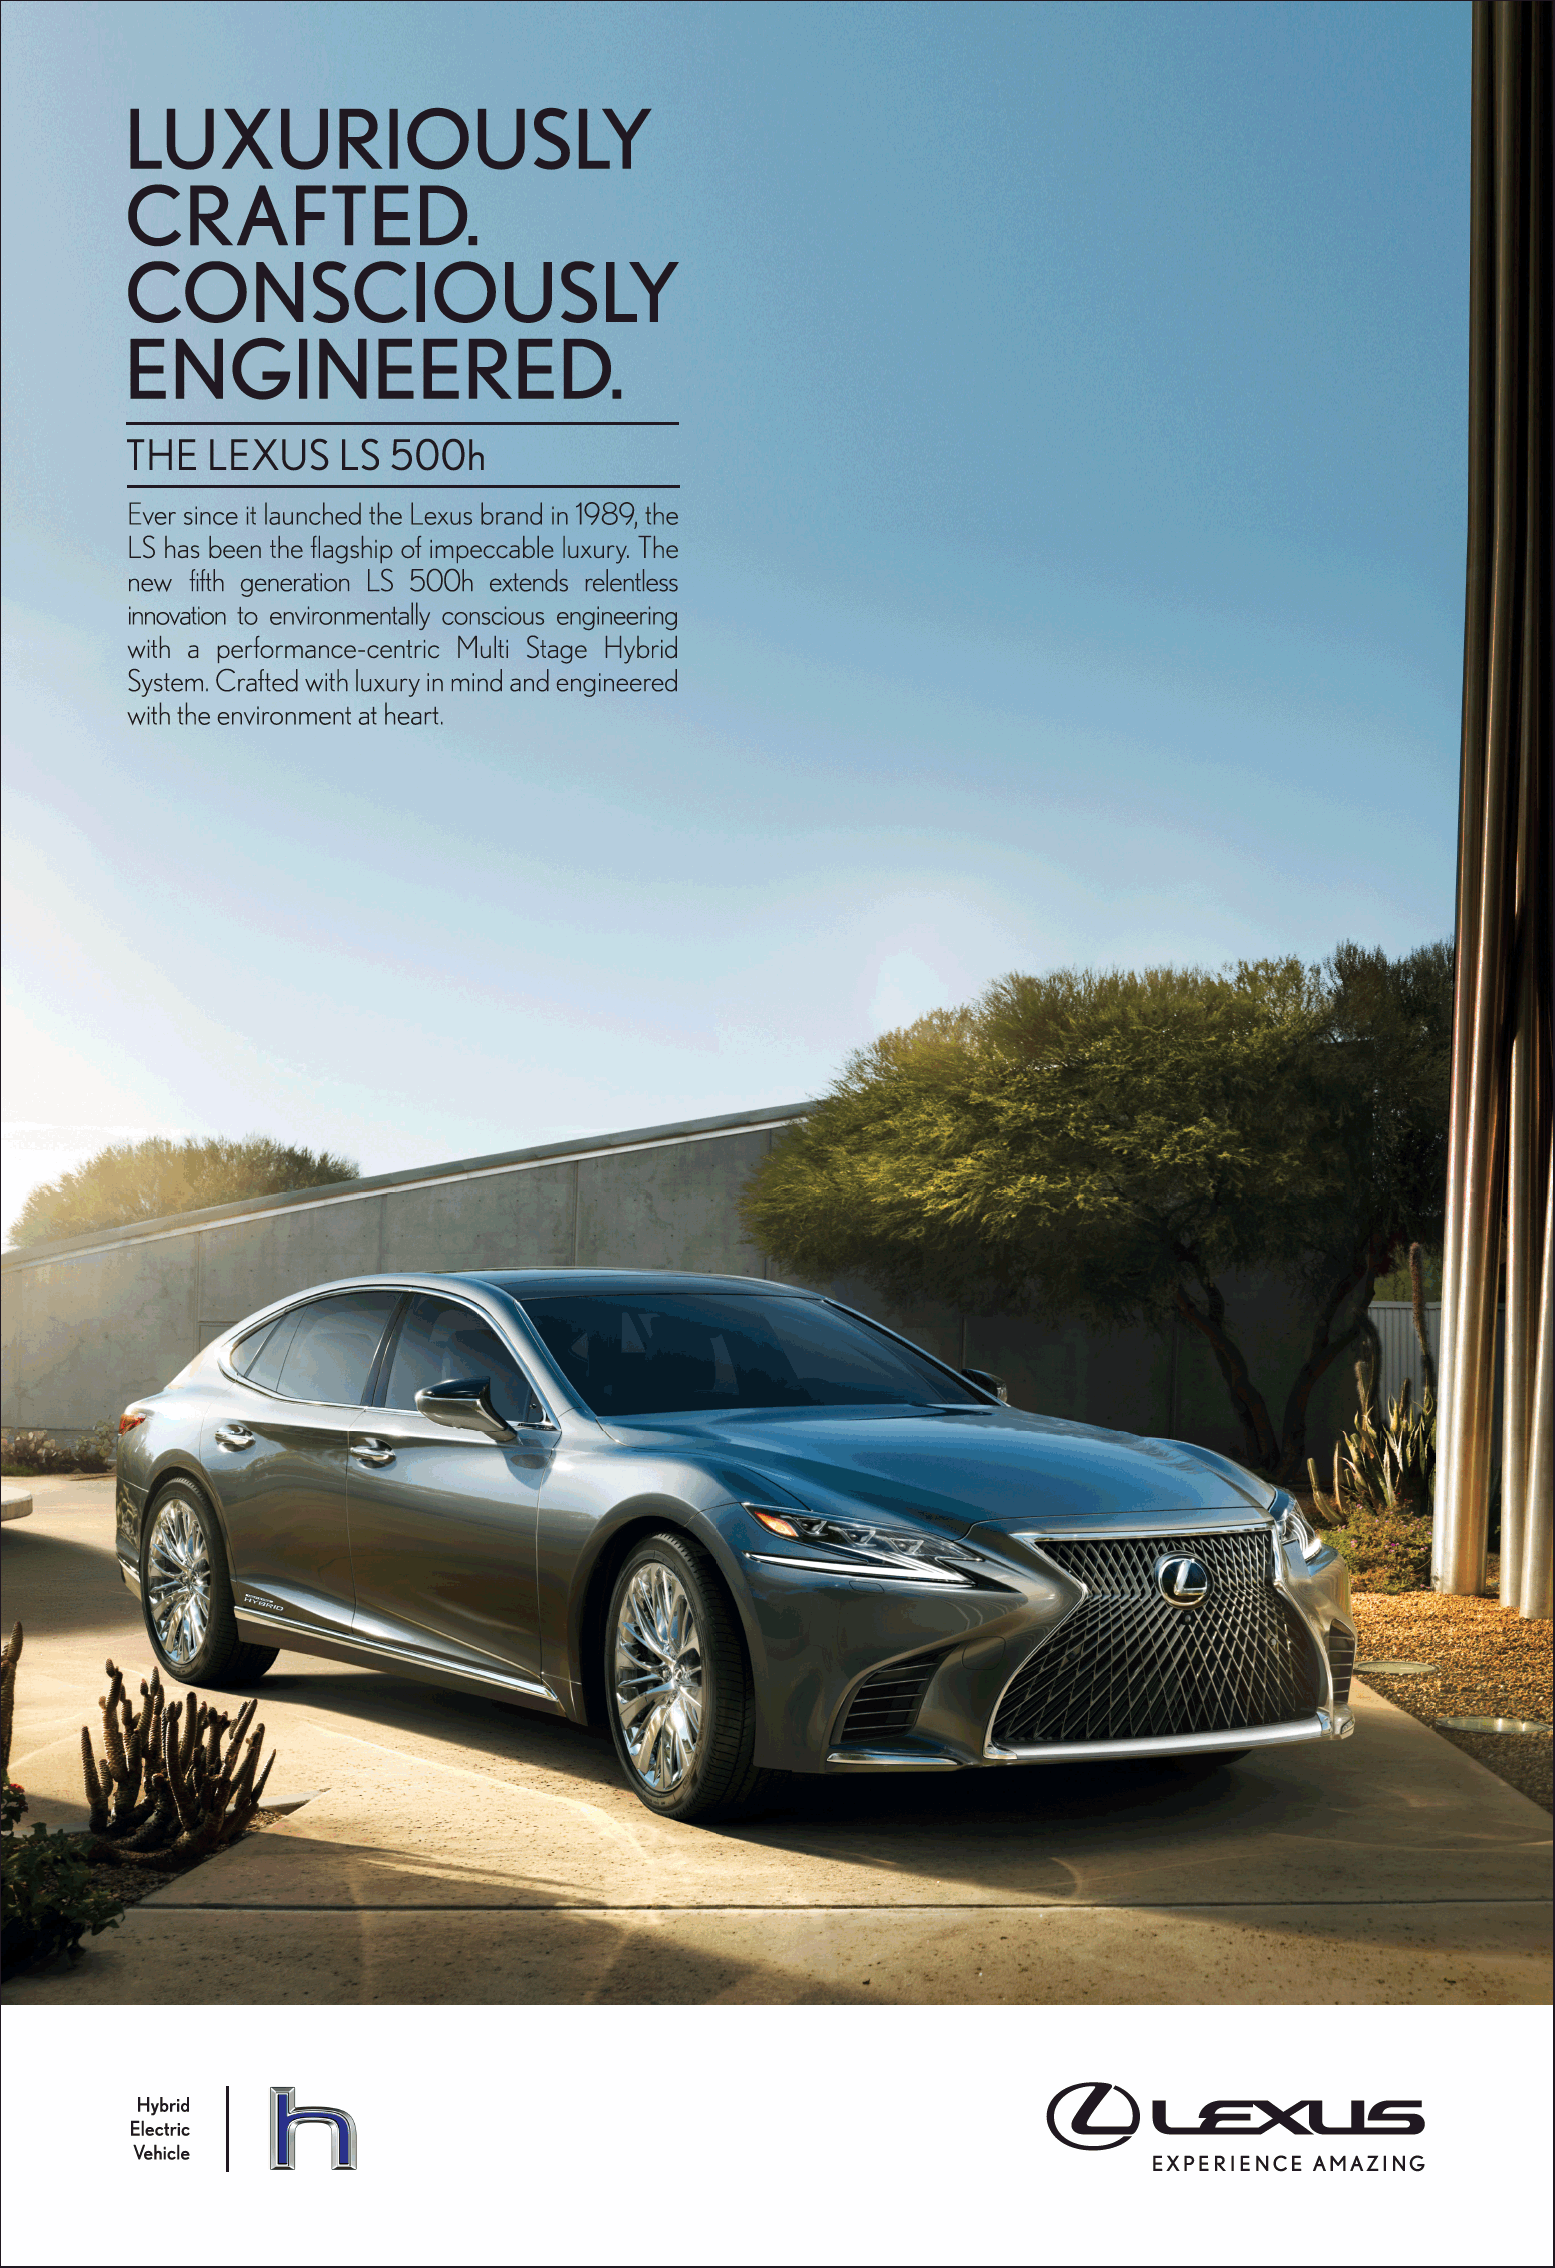 Lexus Car Experience Amazing Luxuriously Crafted Consciously Engineered Ad